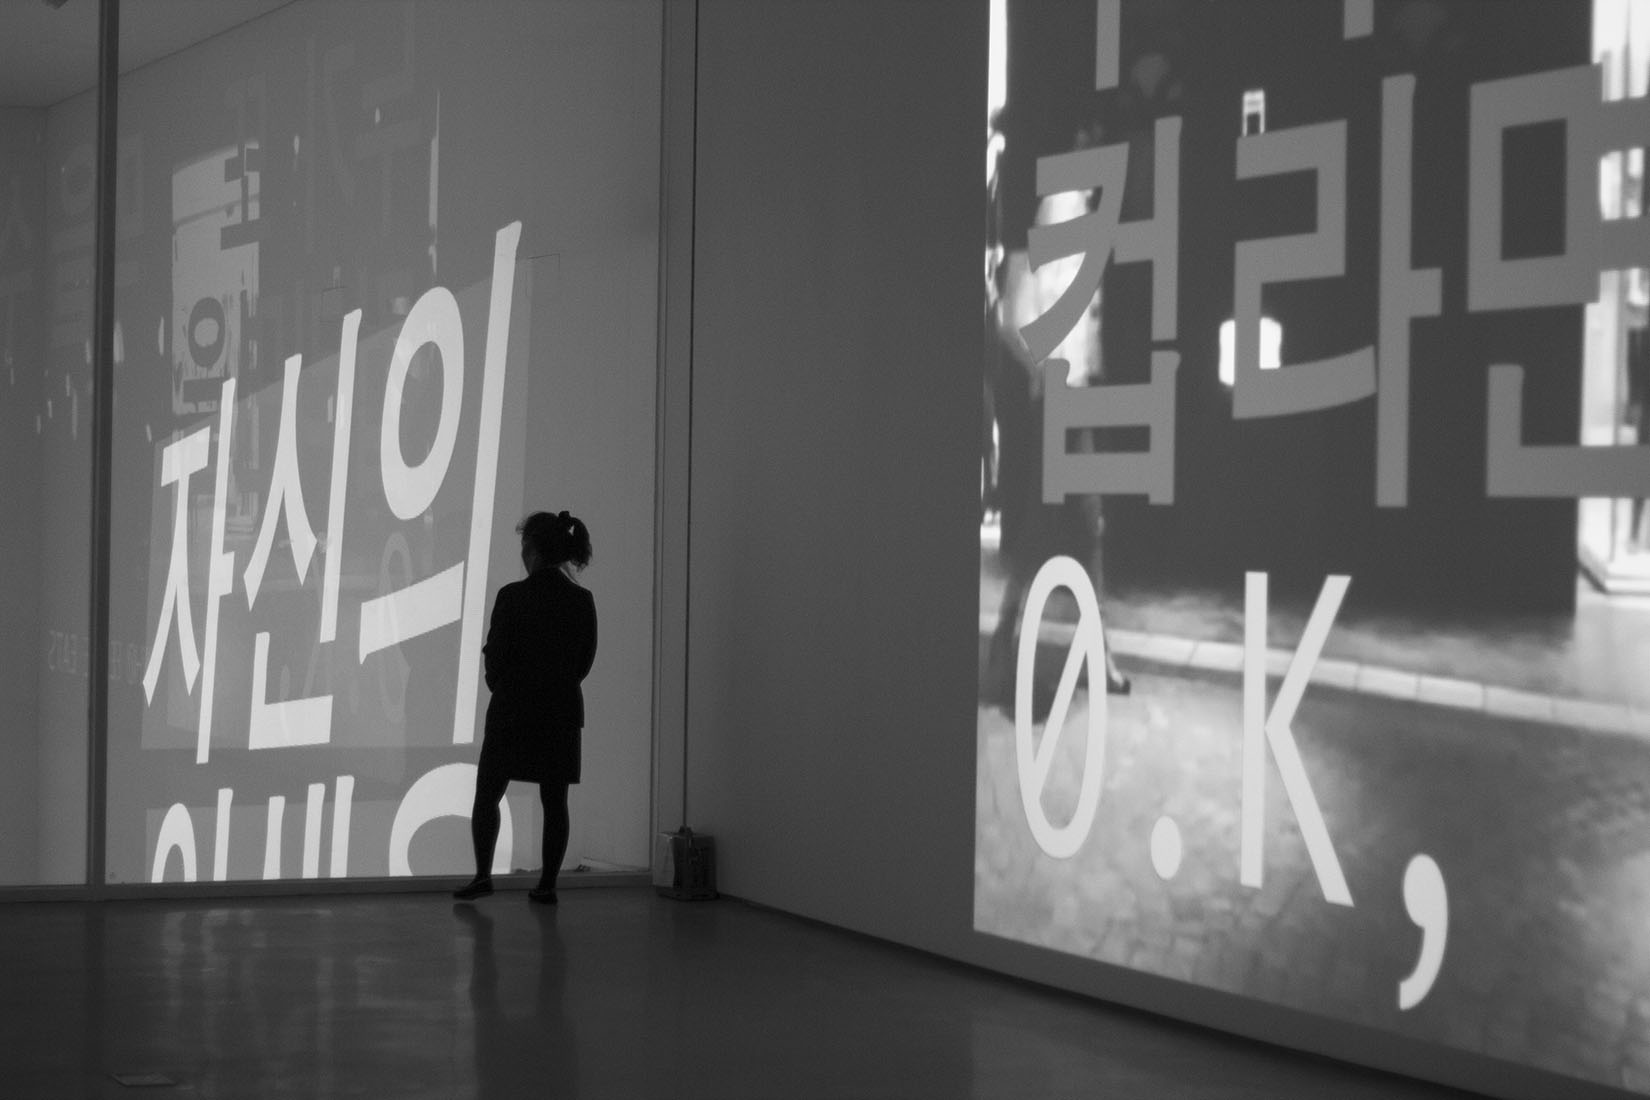 Young-Hae Chang Heavy Industries, Groovin 'To the Beat of the Big Lie, video projection, contemporary art, Korean, Hangul letters, typeface, silhouette